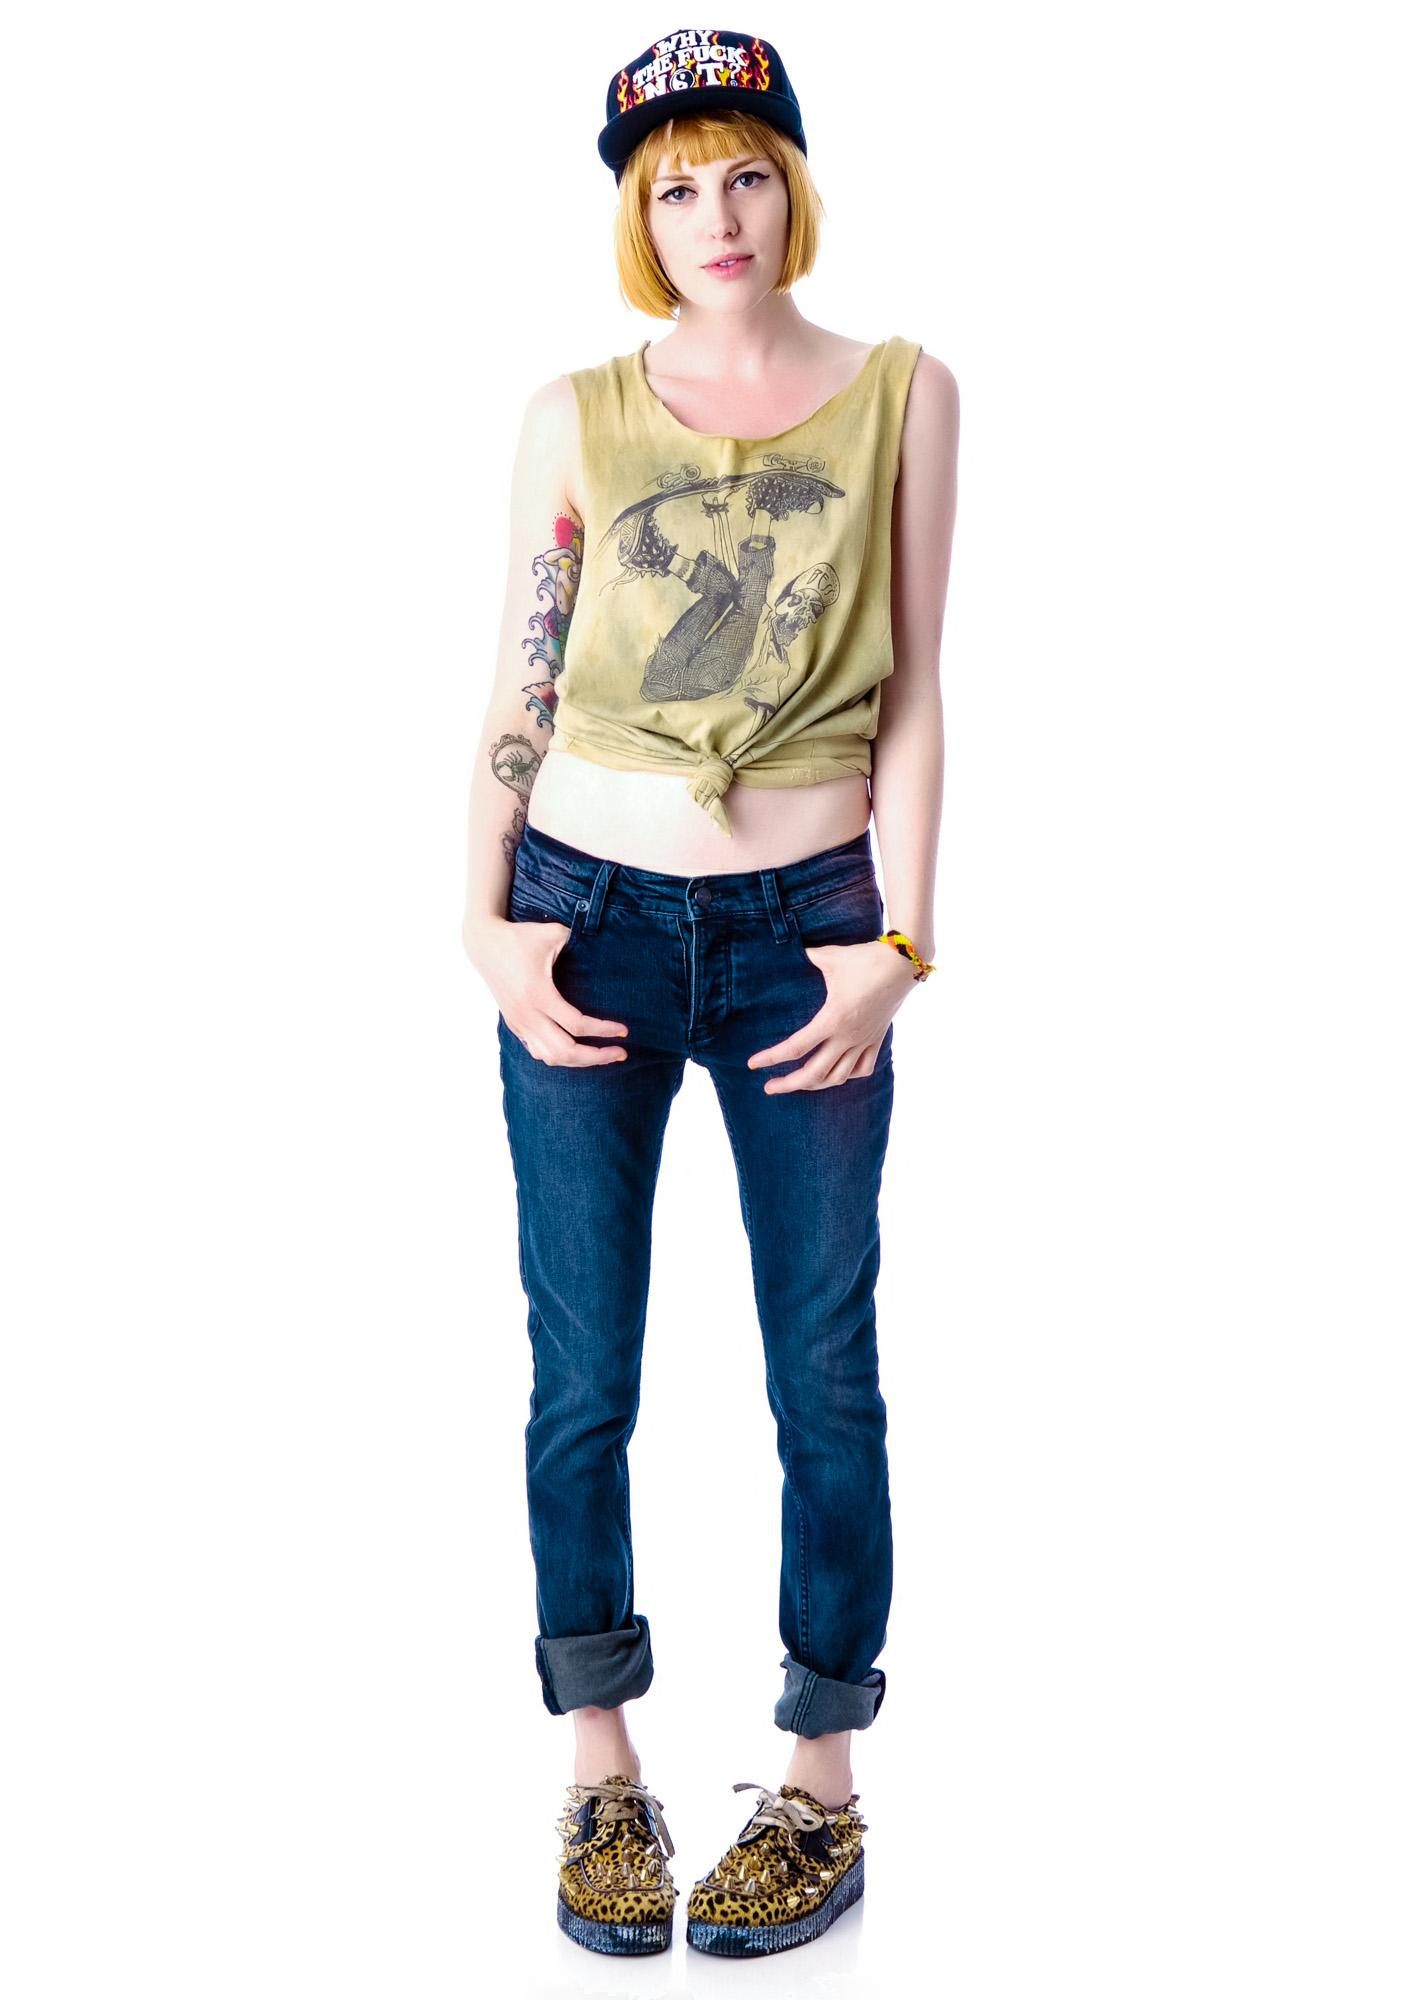 Kill City Brimstone Junkie Boyfriend Jeans